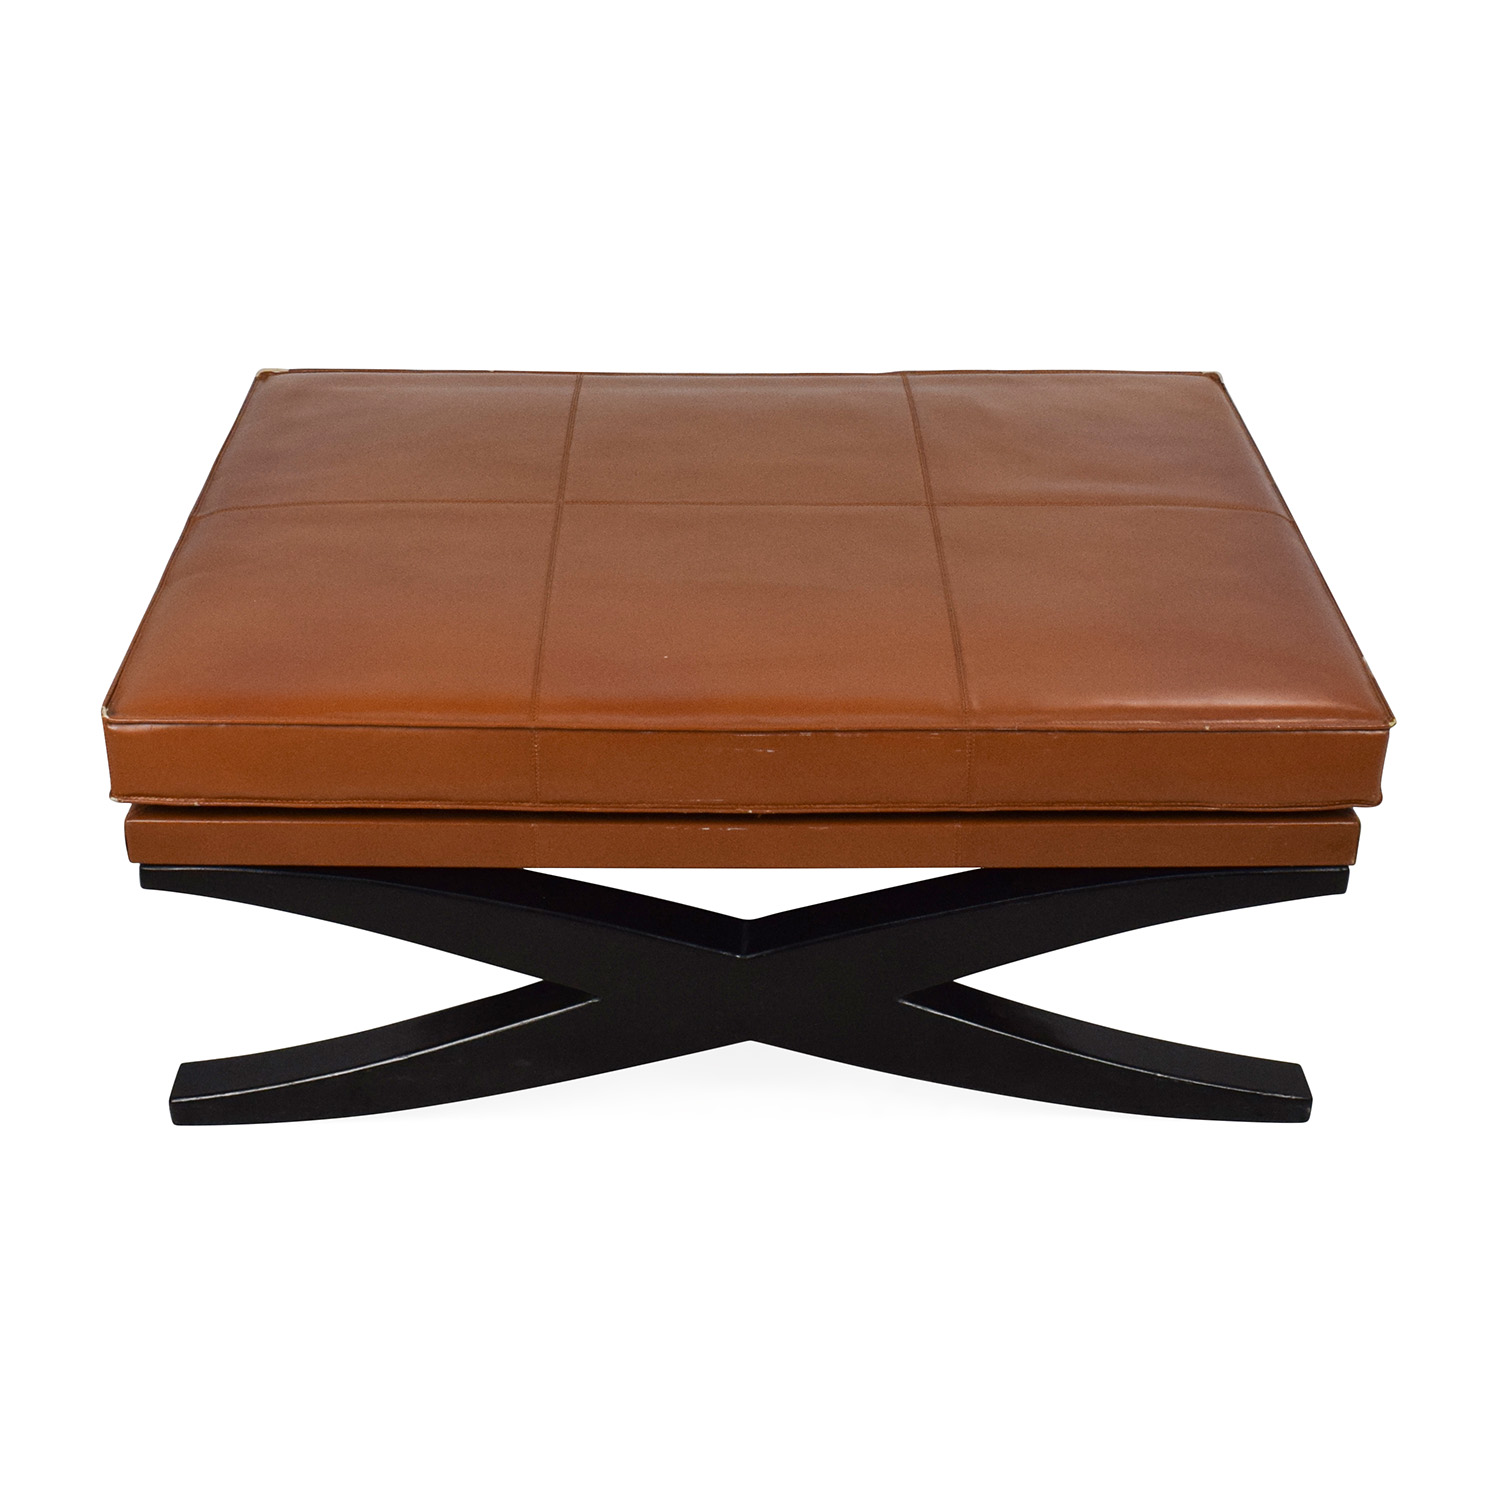 90% OFF Klismos Leather and Wood Ottoman Storage